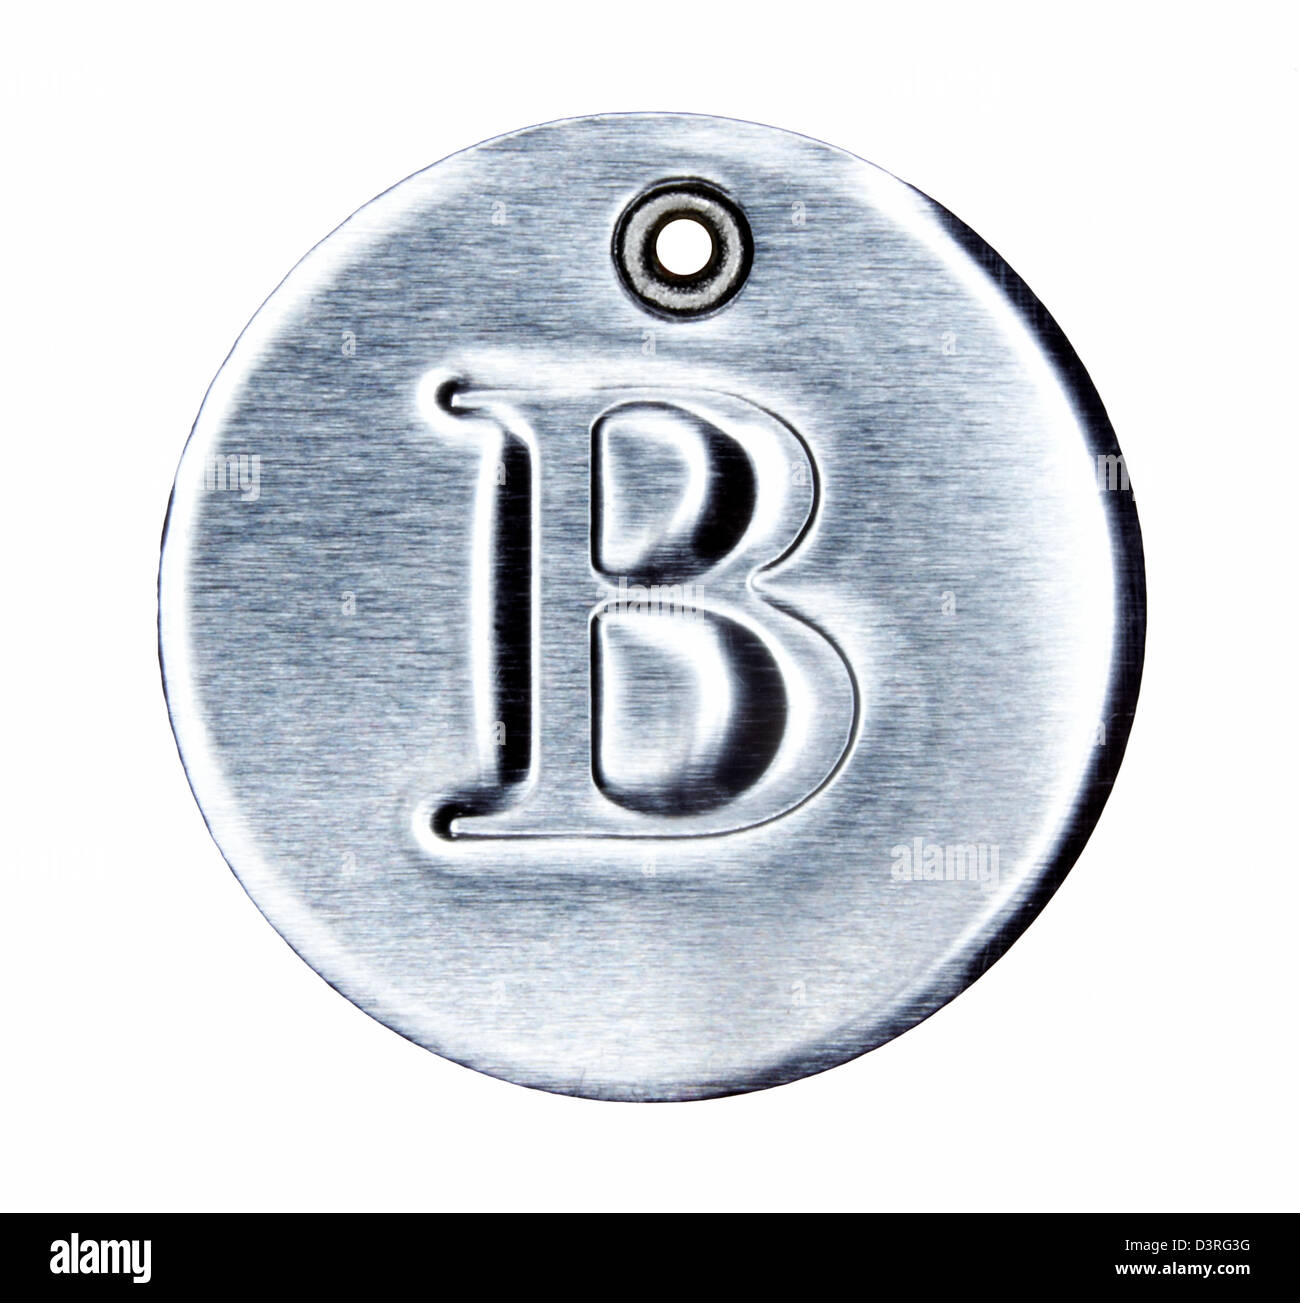 Brushed metal letter of the alphabet B - Stock Image